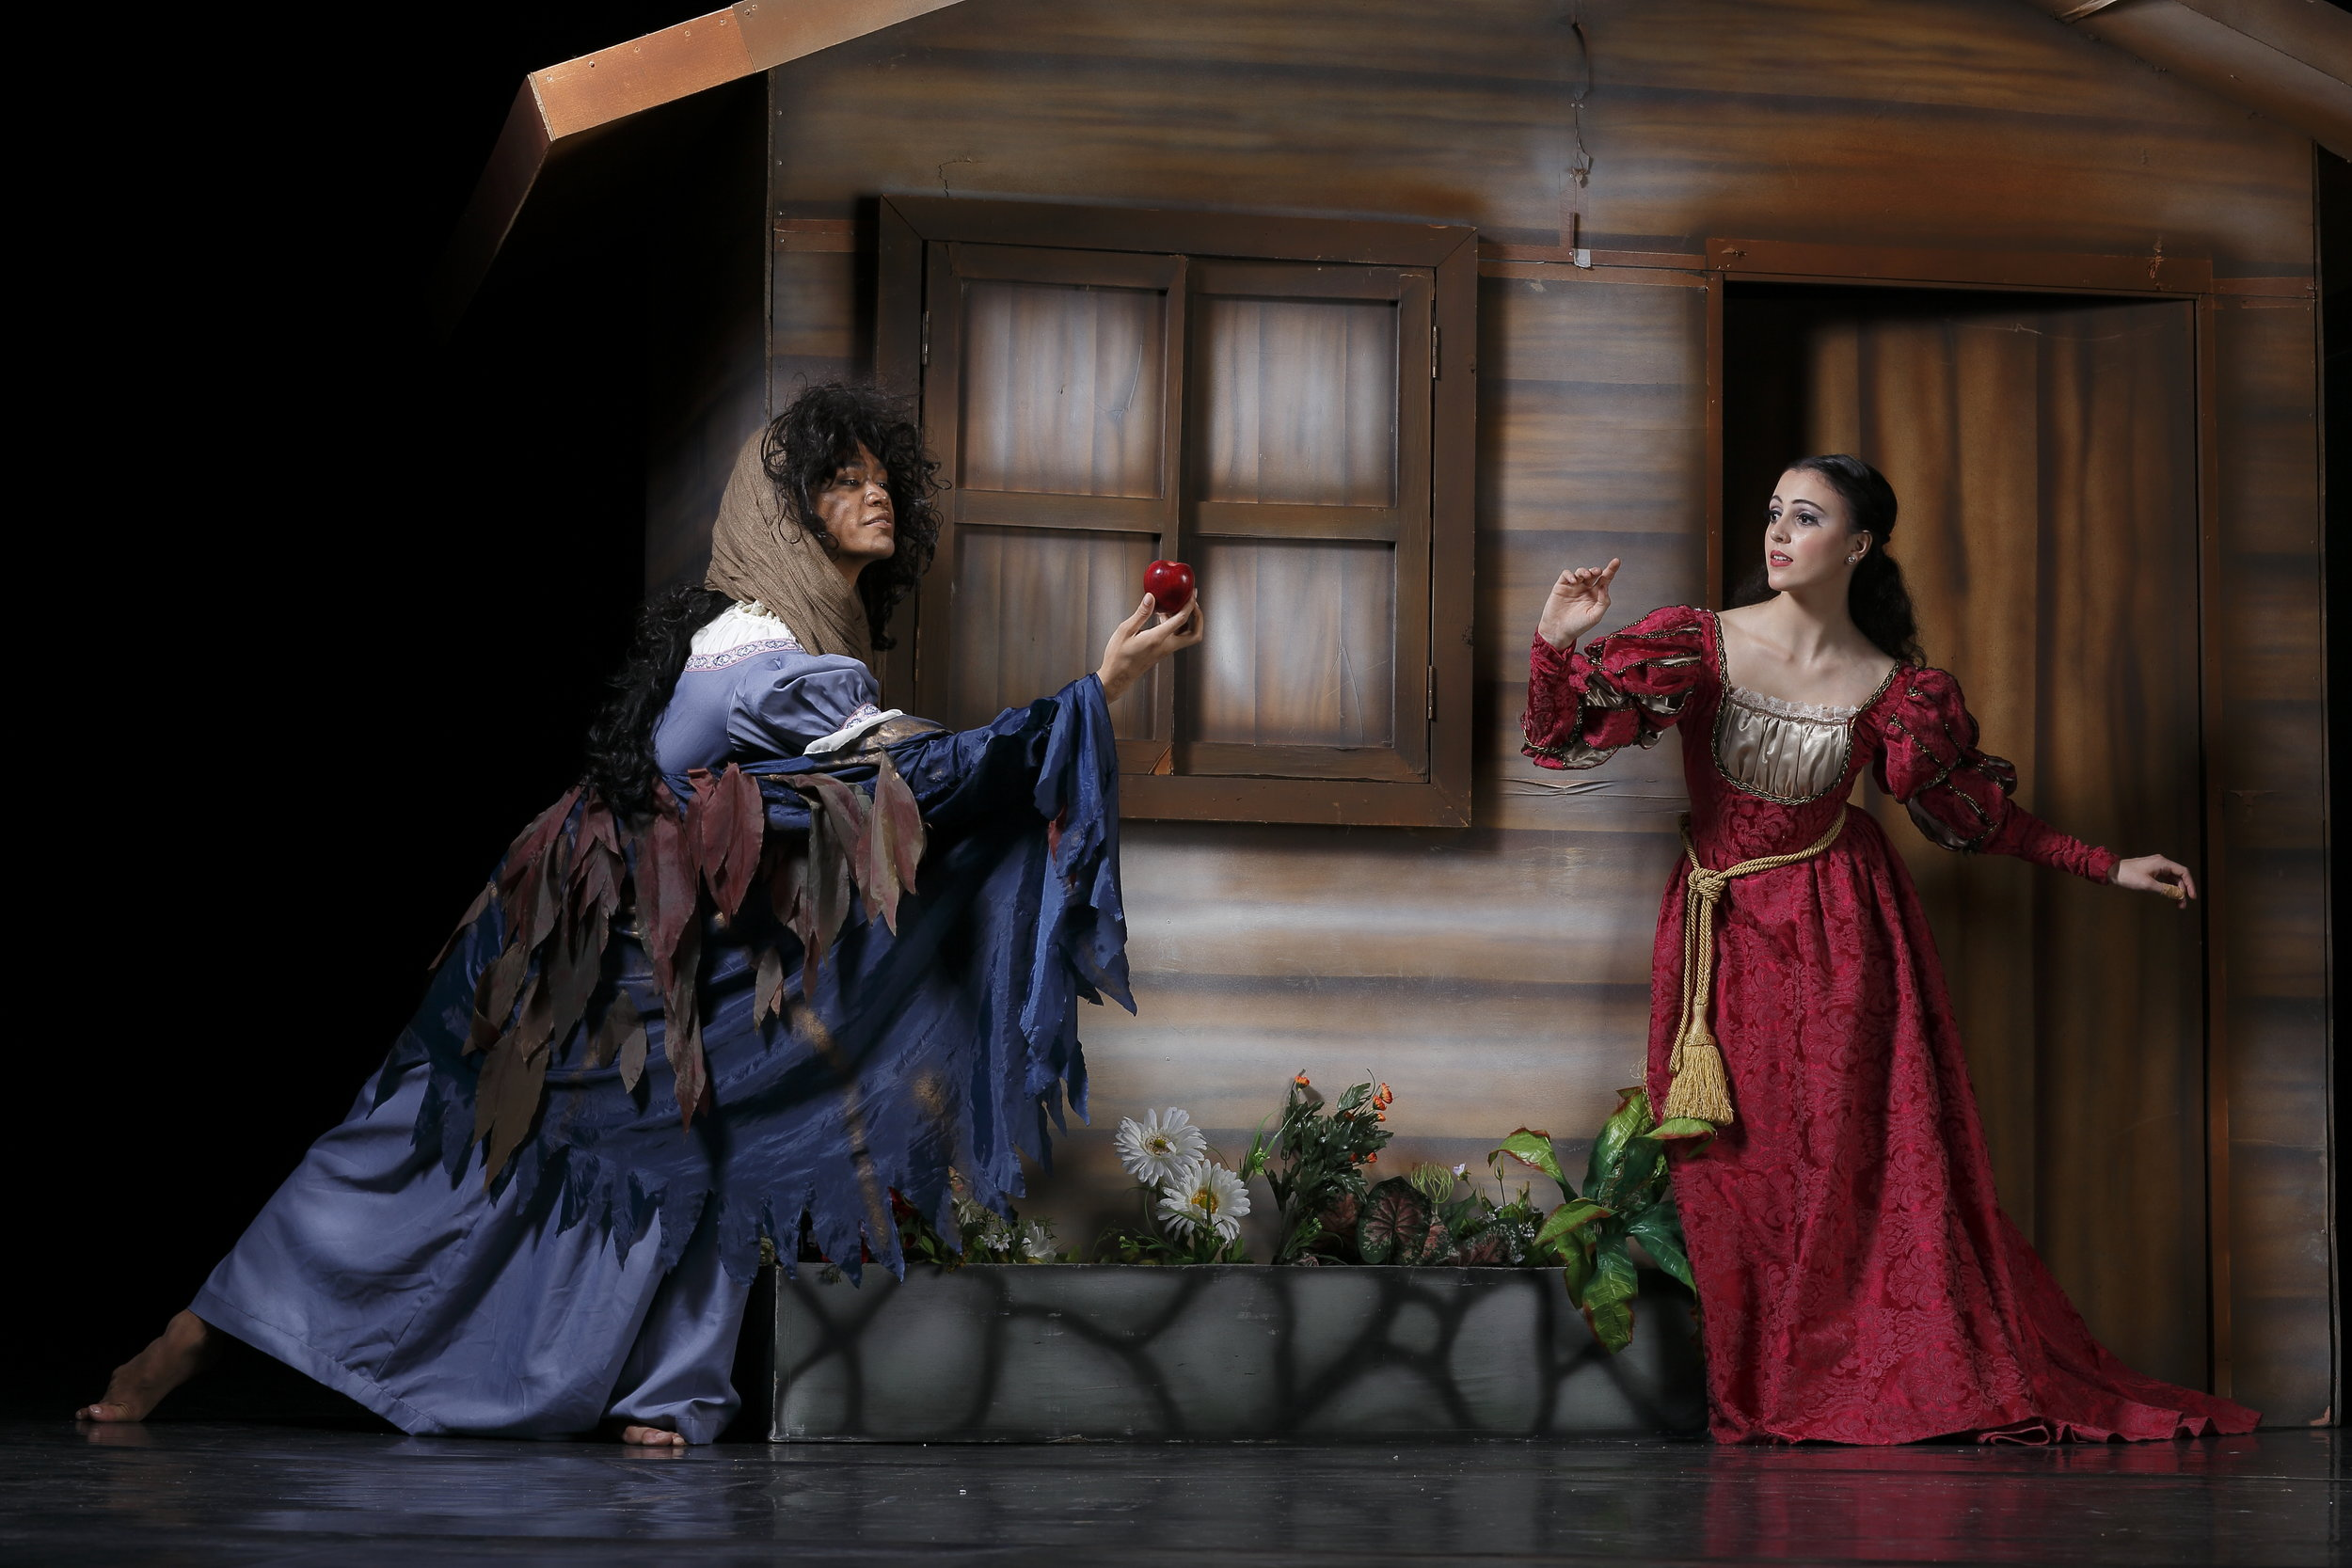 The Witch (Godwin Merano) entices Snow White (Katherine Barkman) to take a bite out of the poisoned apple.